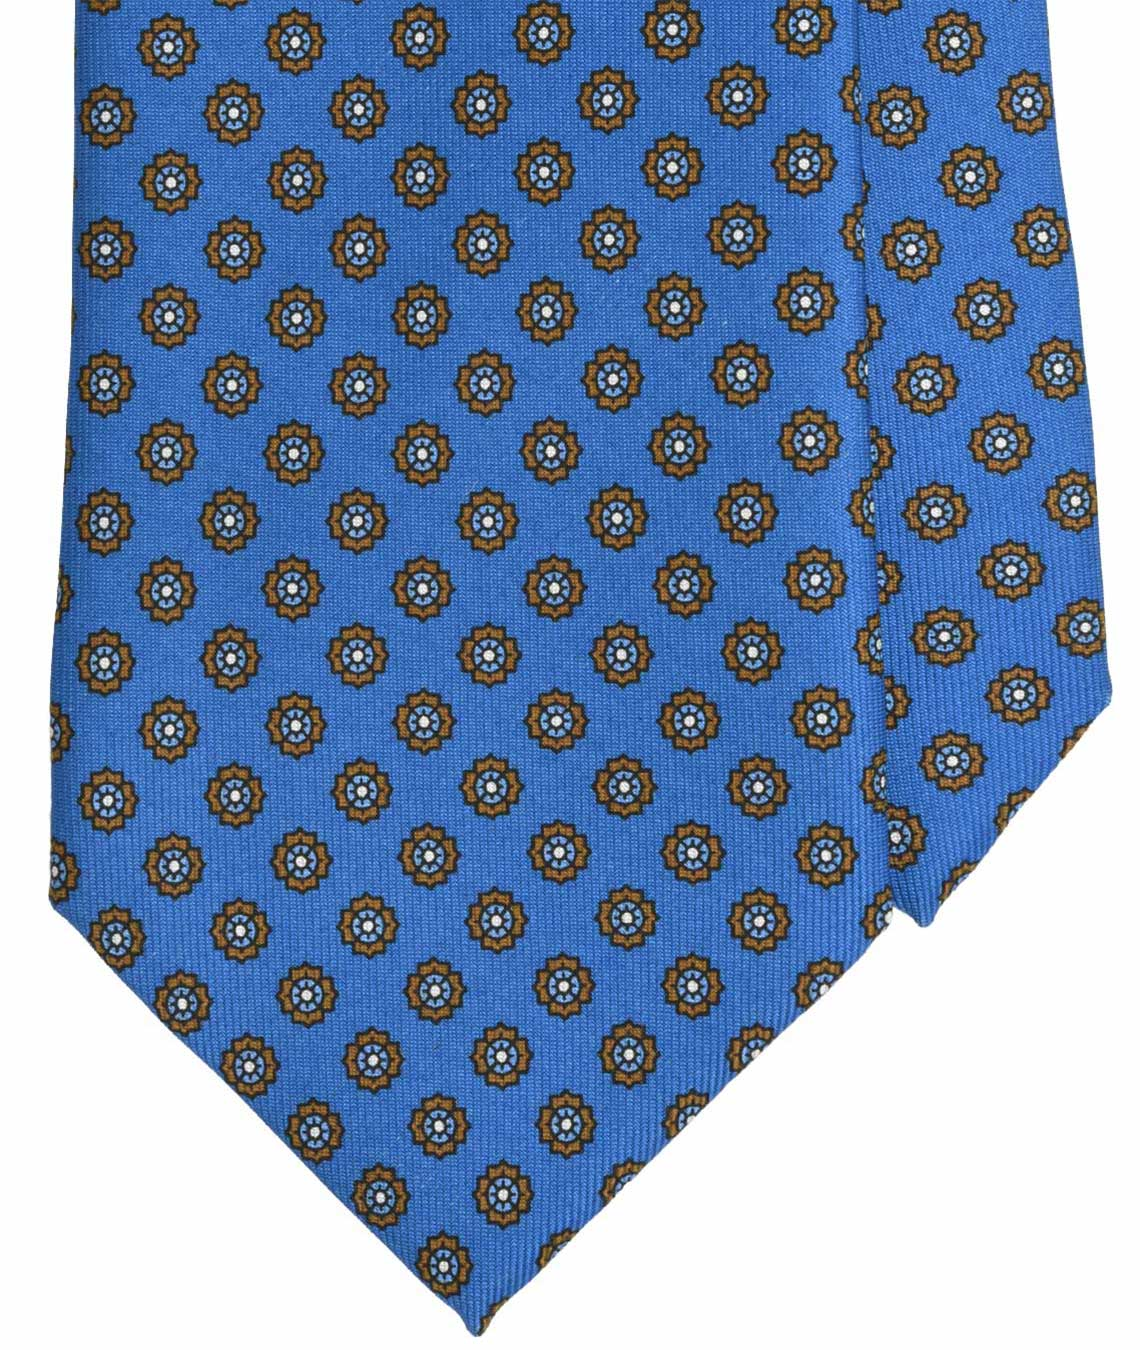 Bigi Milano, 36 ounce handprinted silk, floral blue